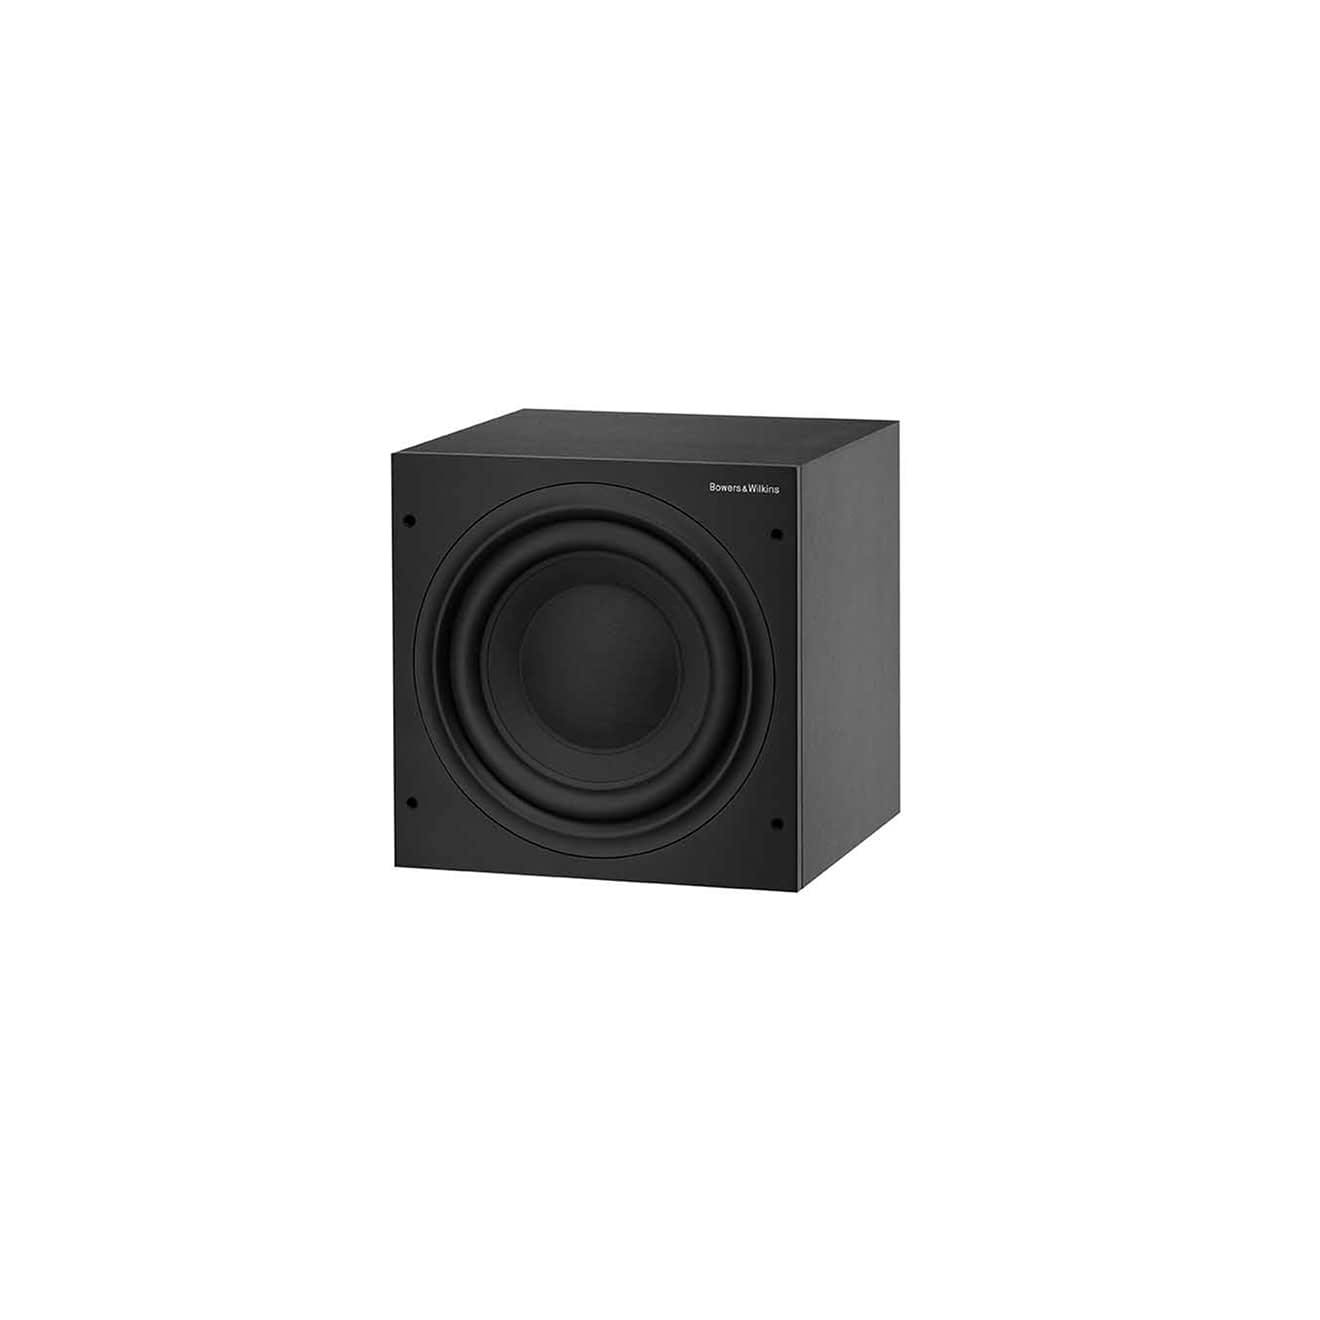 B&W ASW610XP-Black subwoofer